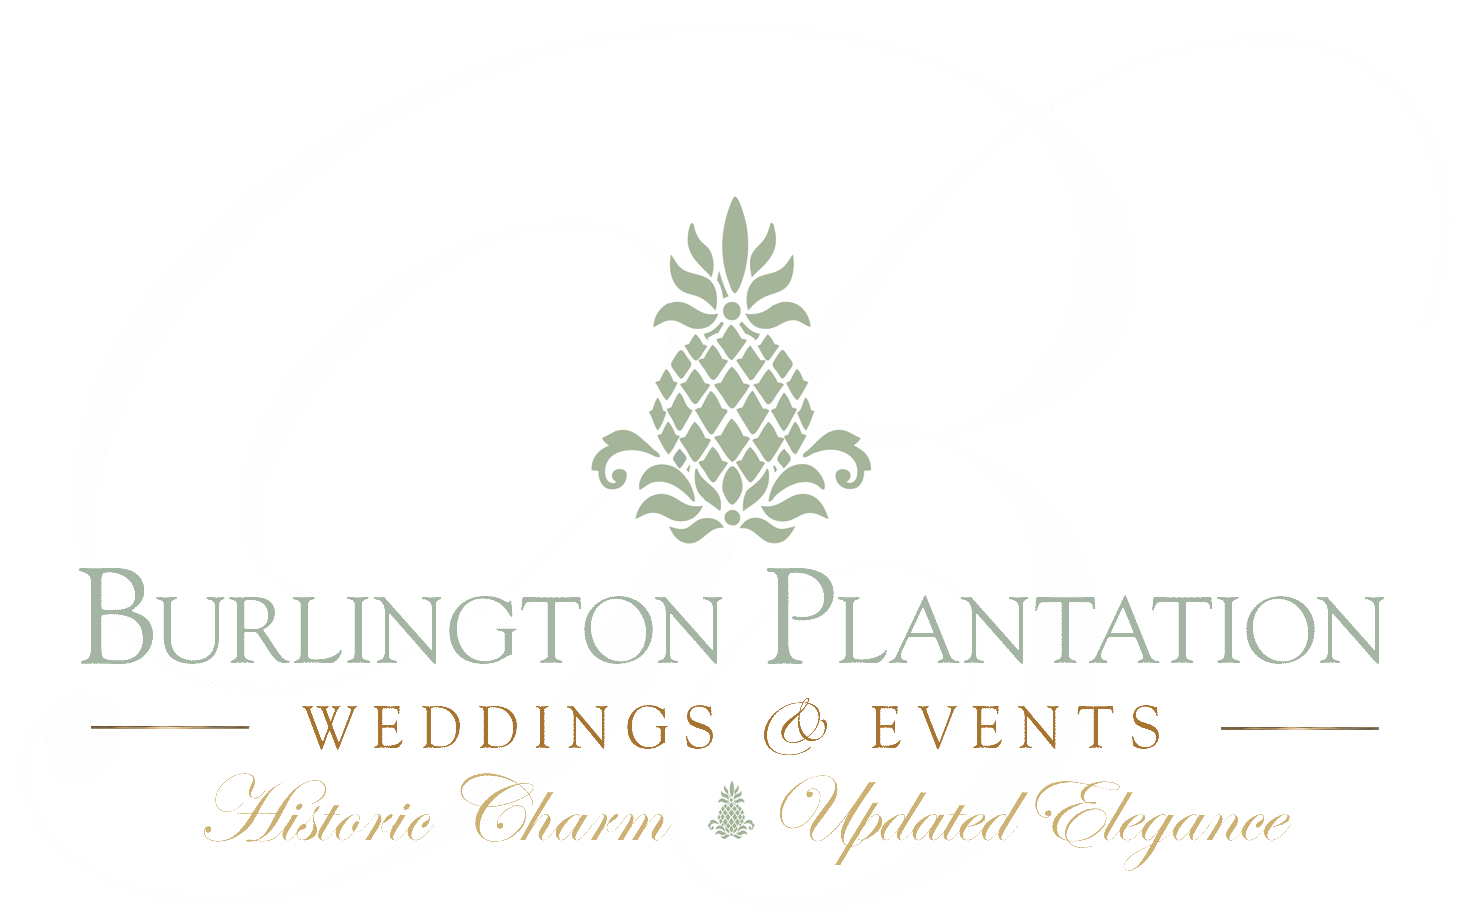 Historic Charm~Updated Elegance – New Wedding, Meeting & Event Venue located in the heart of James River Plantation Country between Williamsburg & Richmond, Va